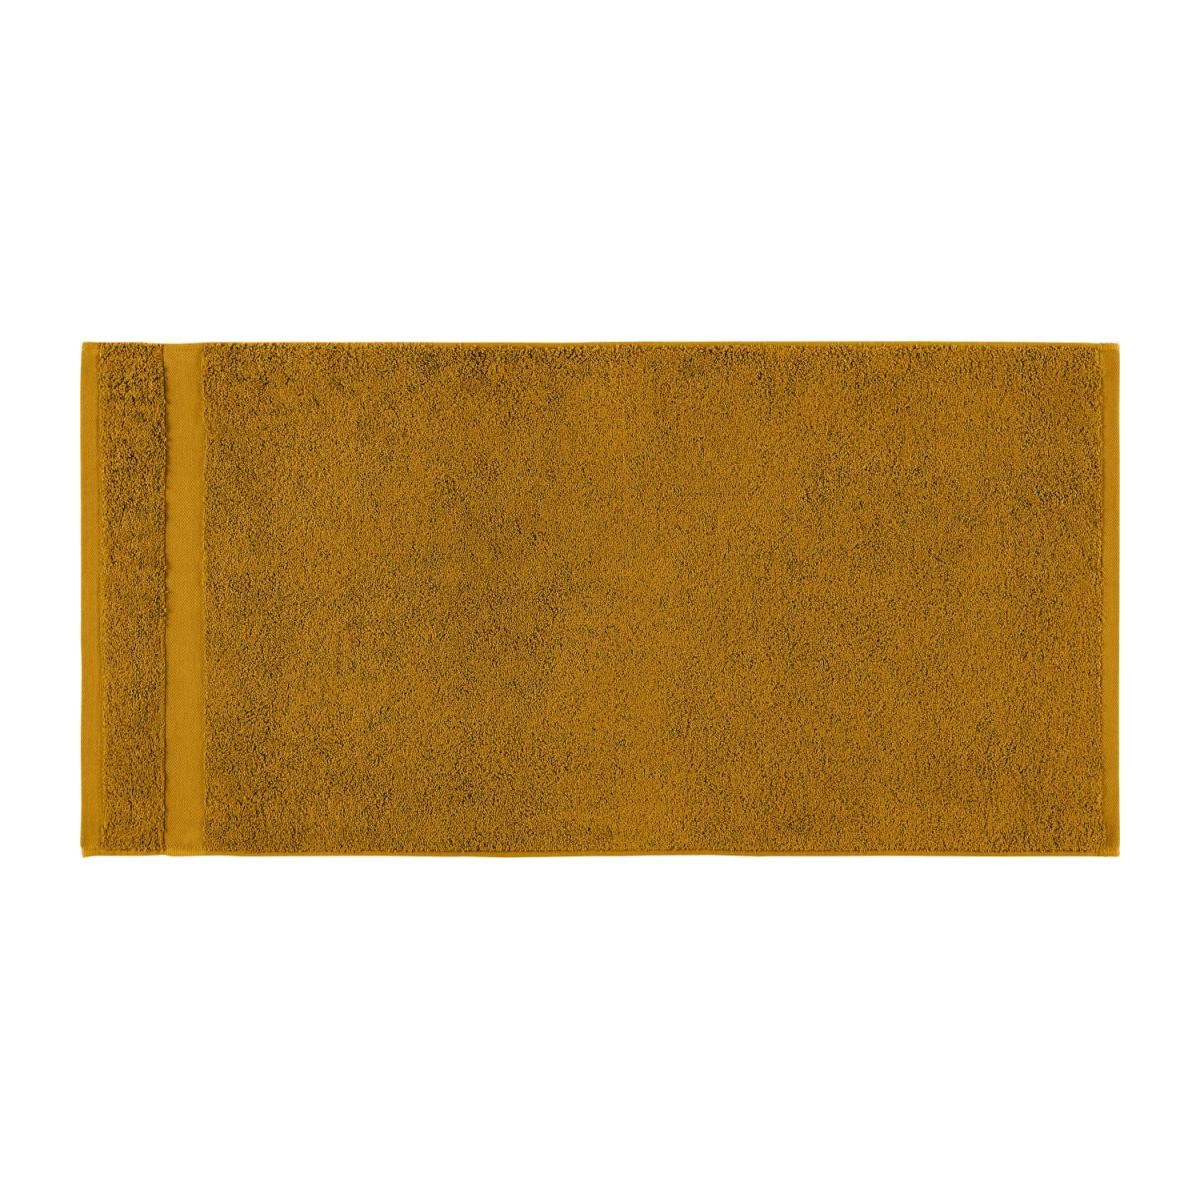 Towel made of cotton 50x100cm, yellow mustard n°3